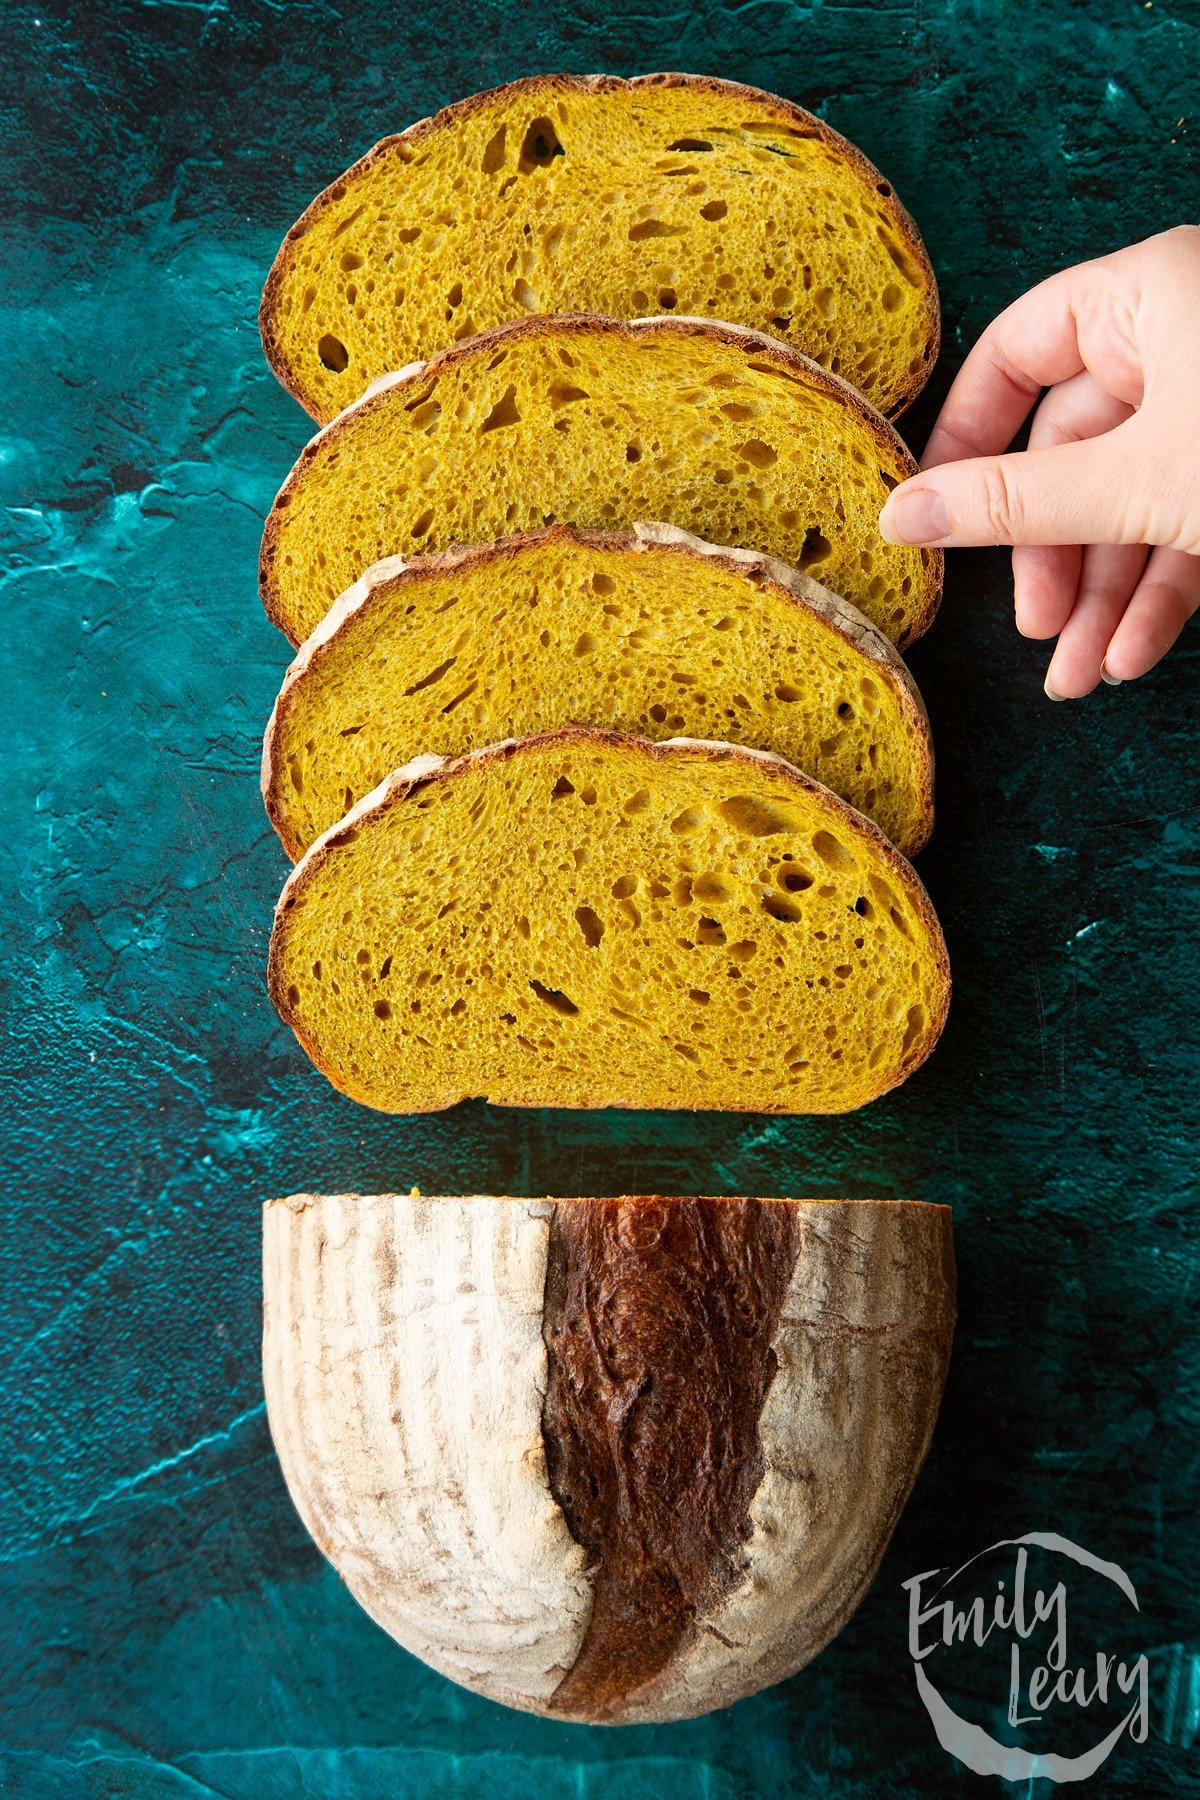 Pumpkin sourdough bread. Some has been cut into slices. A hand reaches to take a slice.